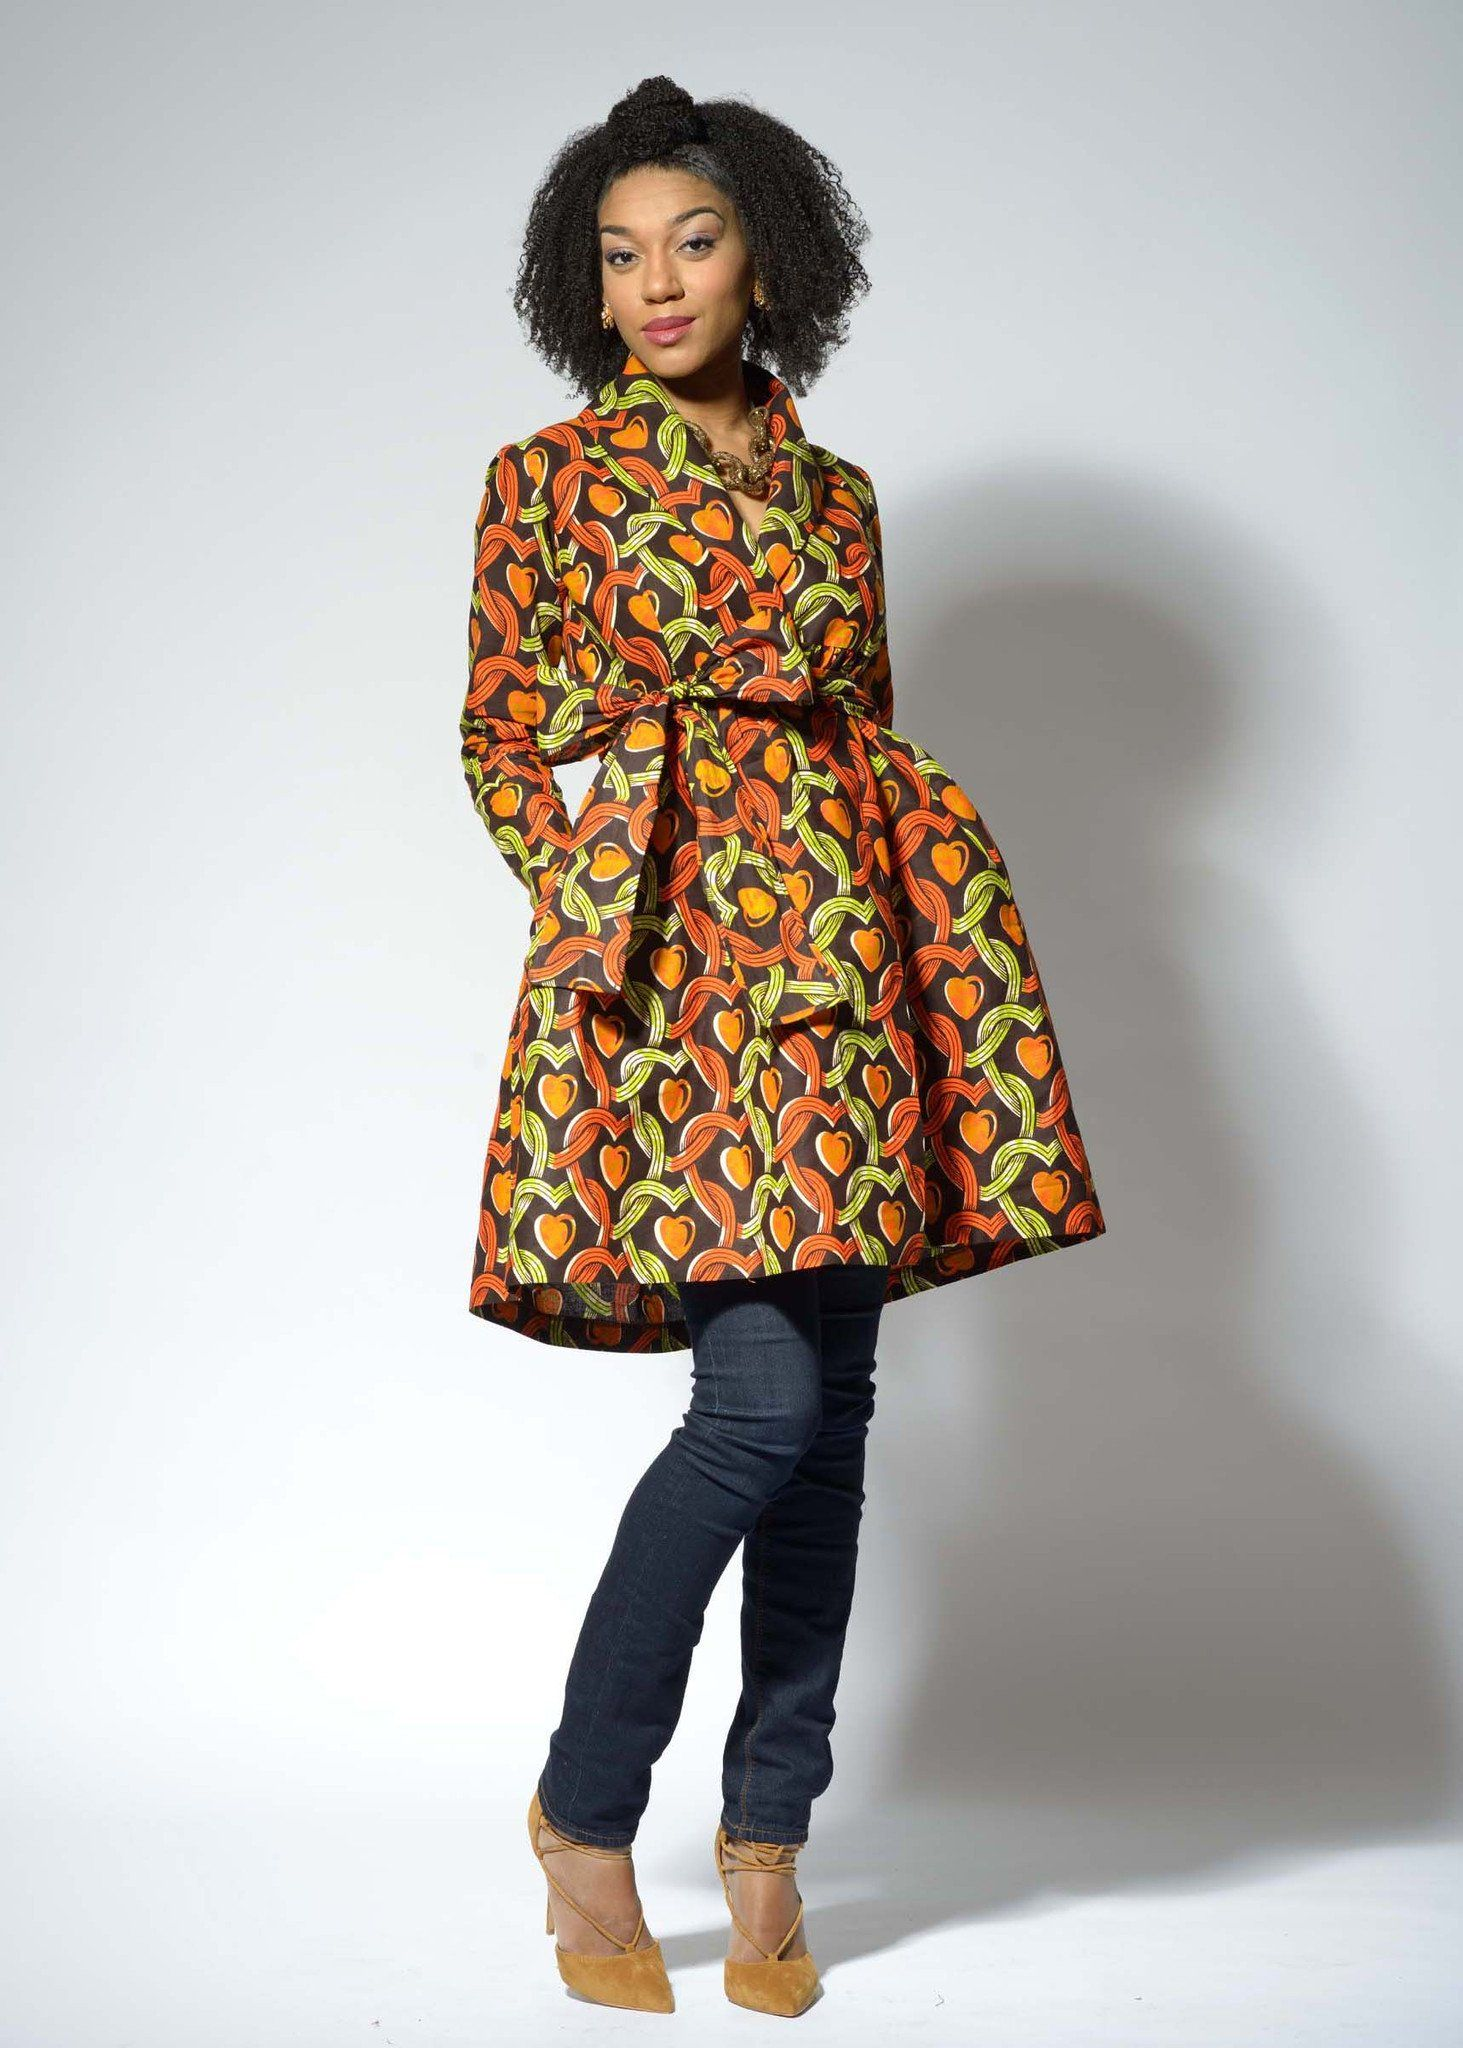 b3d62966c1 Kemi African Print Wrap Dress/Jacket (Brown/Green/Orange) | African ...